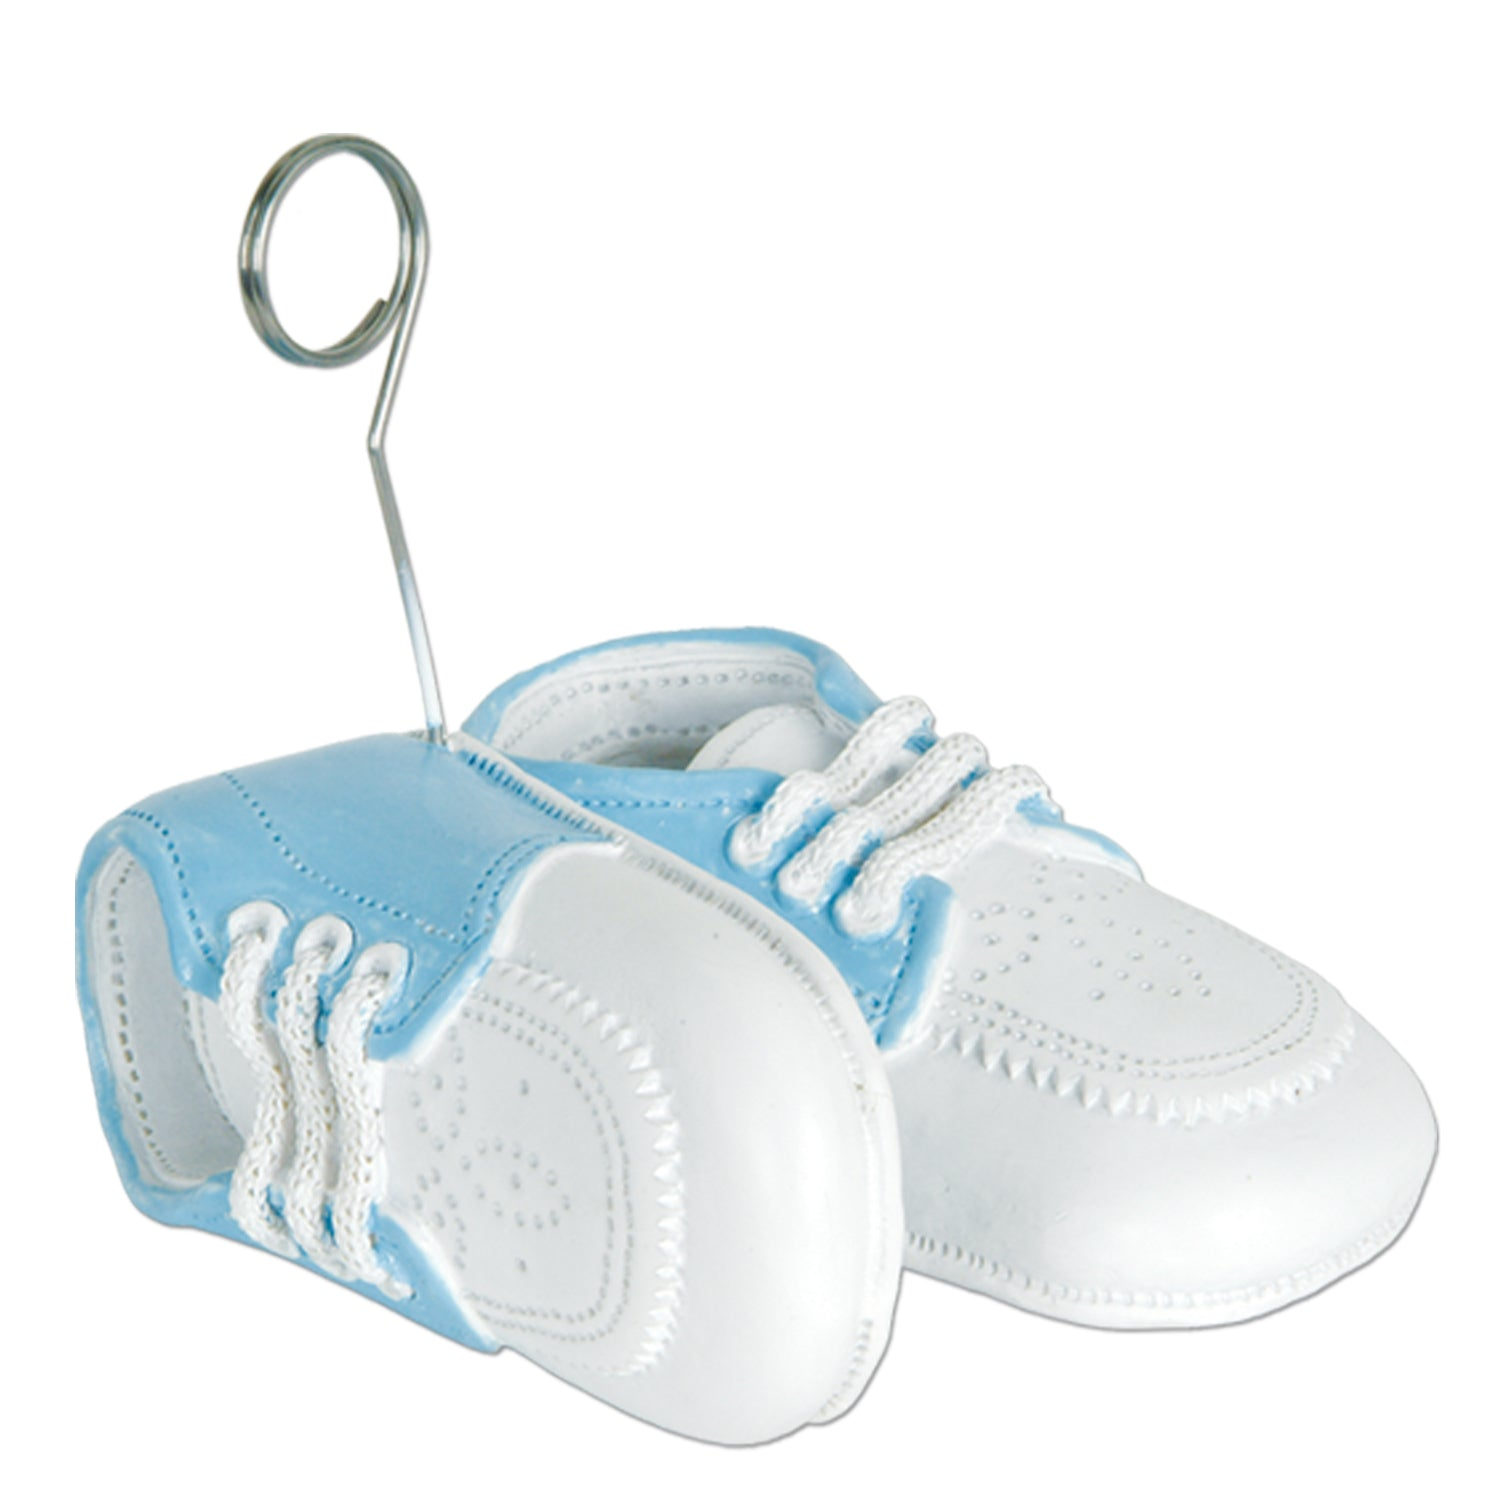 Baby Shoes Photo/Balloon Holder, white w/lt blue upper by Beistle - Baby Shower Theme Decorations